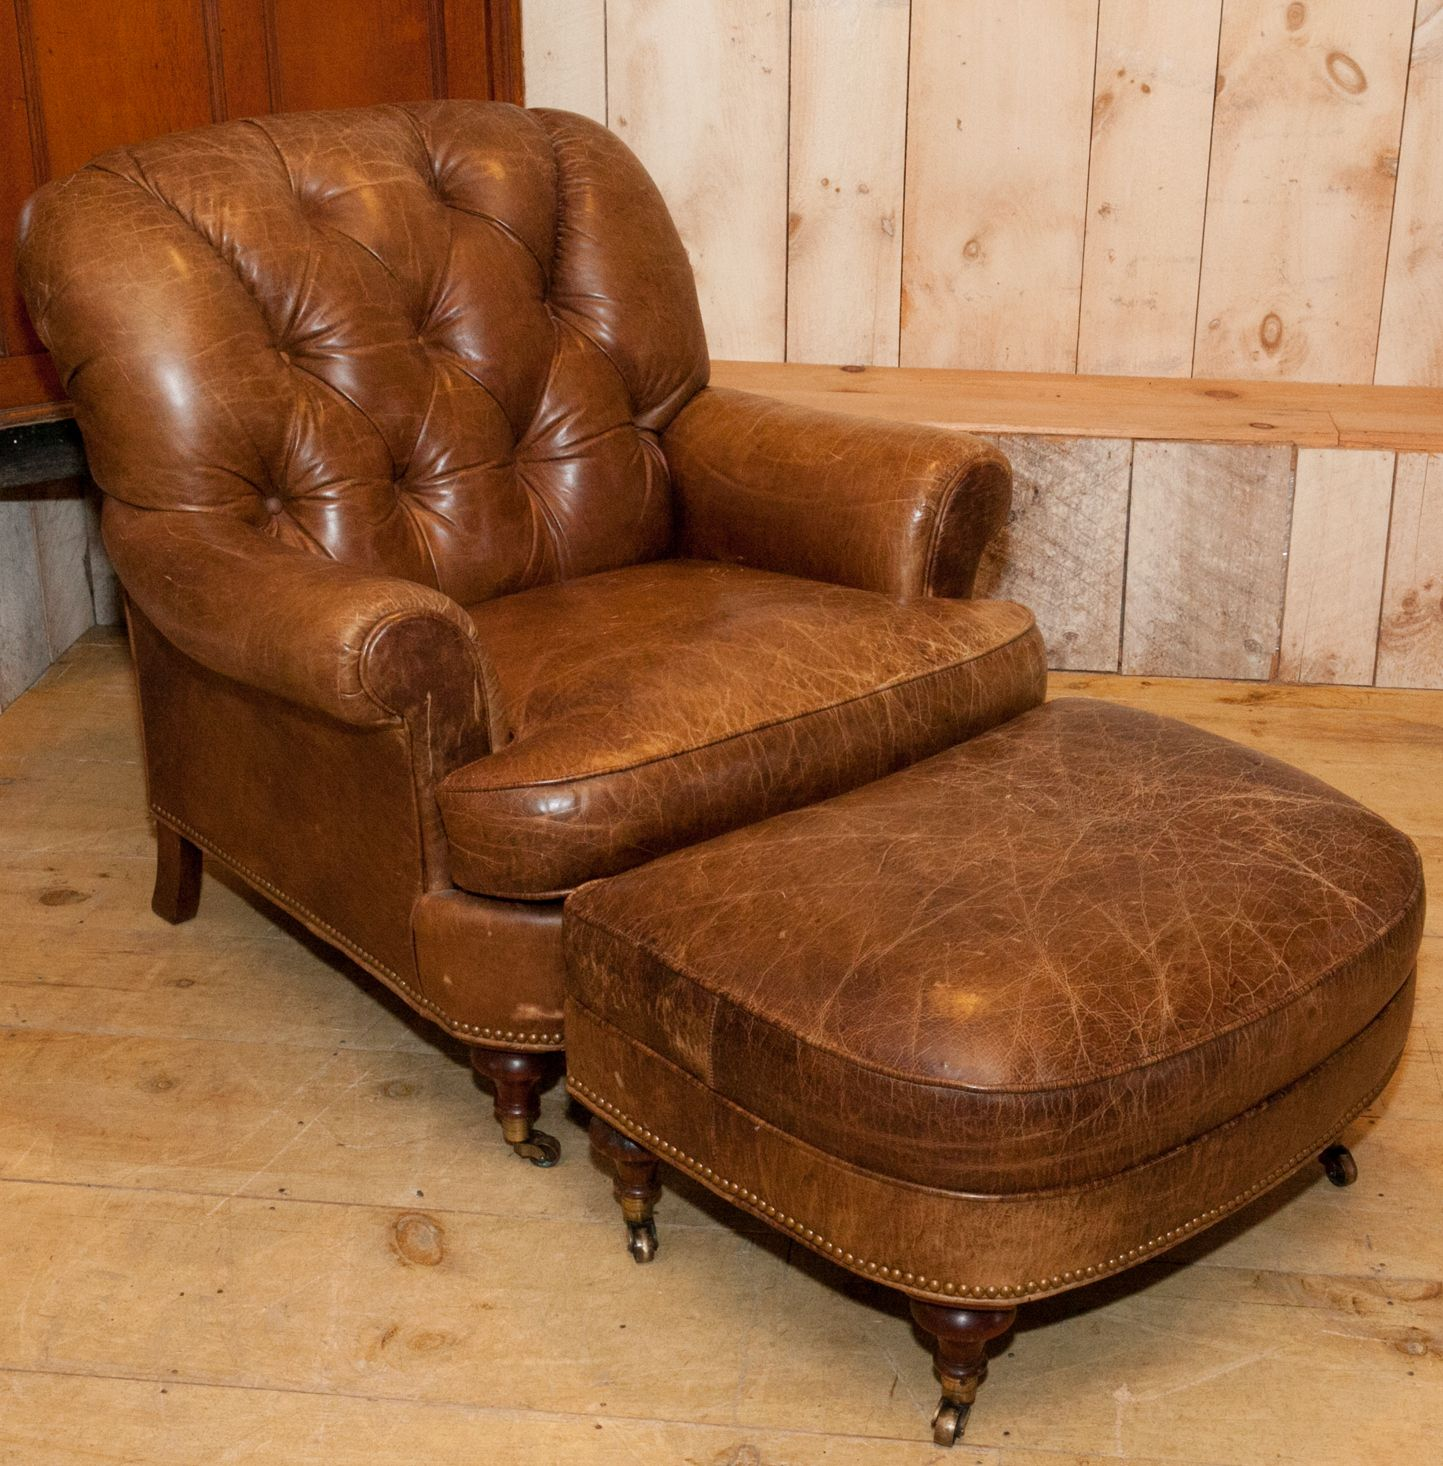 Tufted Leather Club Chair With Matching Ottoman On Casters From Hickory Chair Loden Green Leather Is W Furniture Upholstered Swivel Chairs Living Room Chairs Leather club chair and ottoman